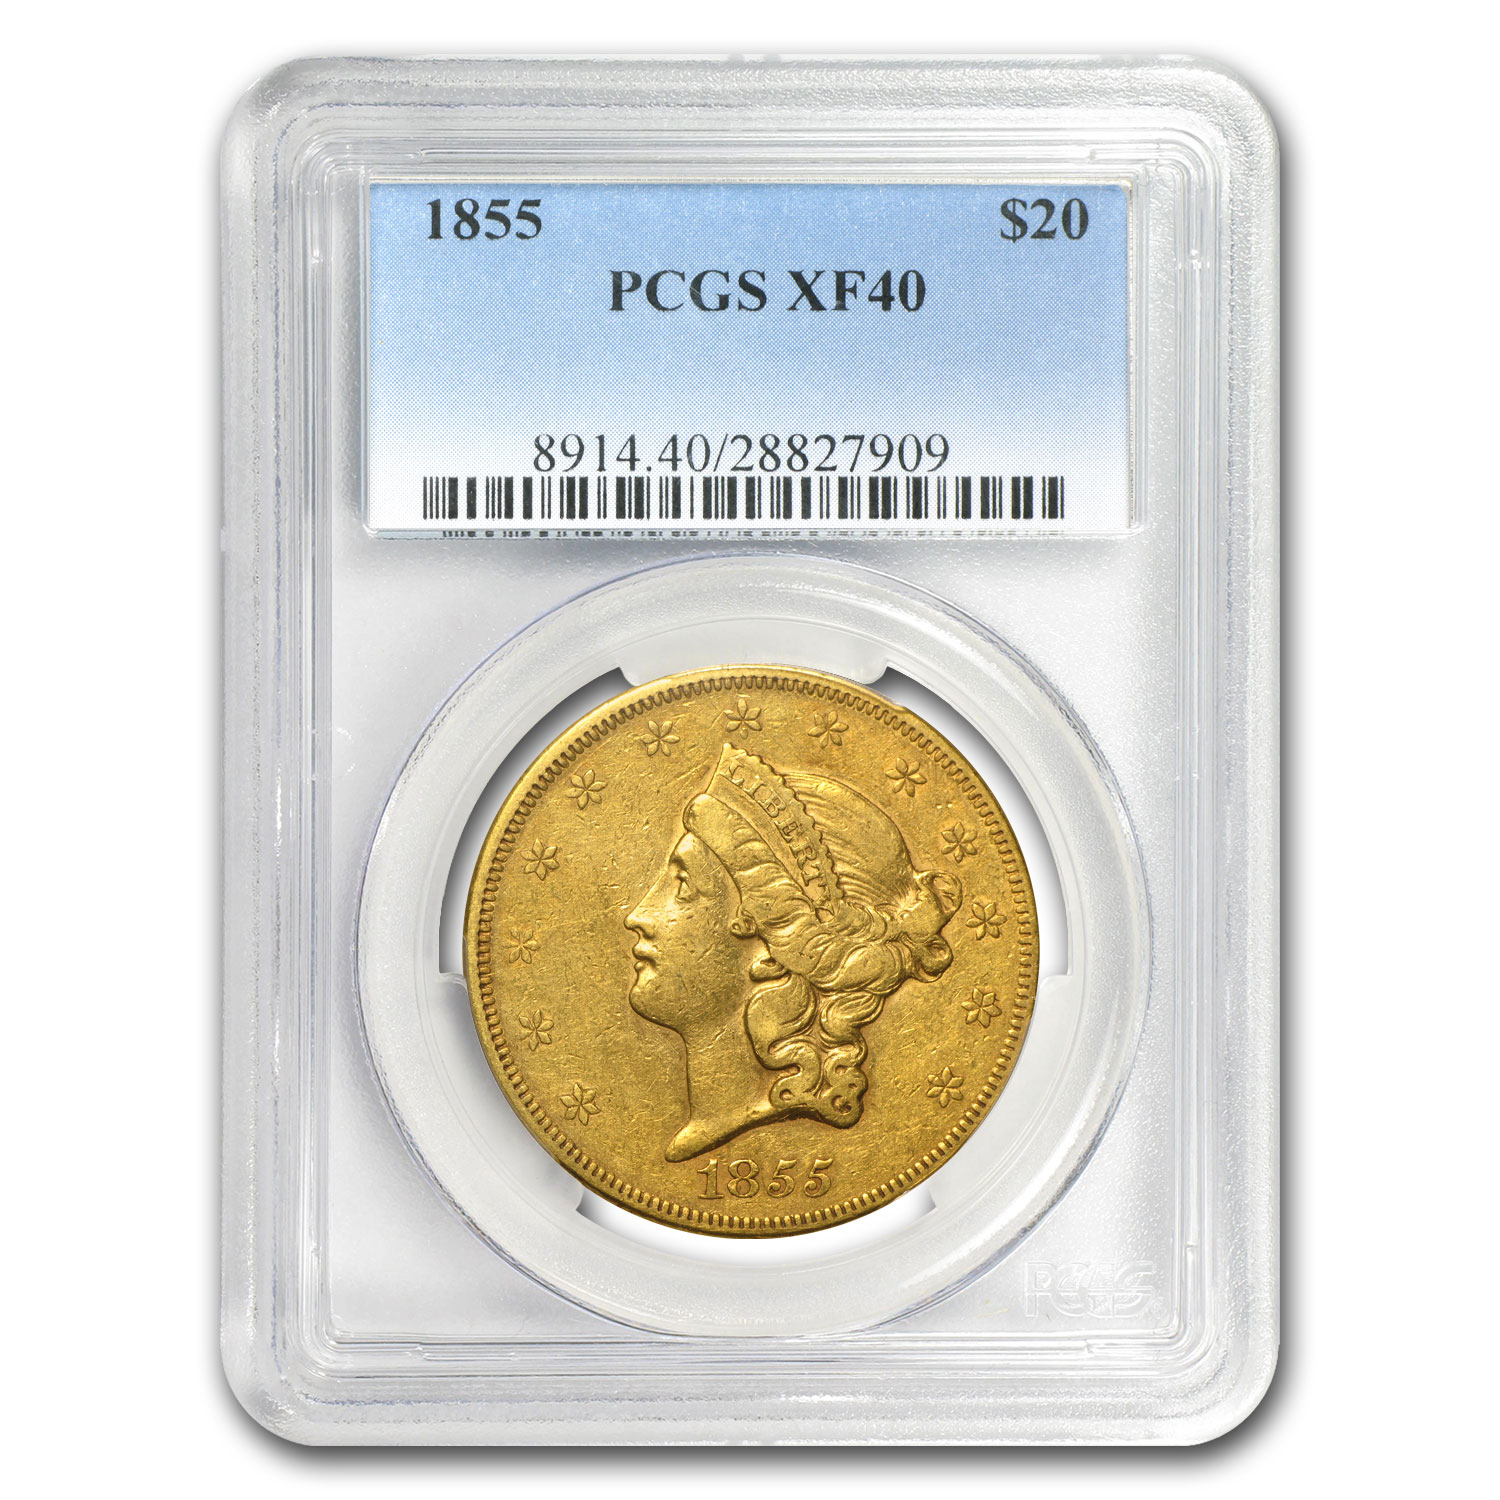 1855 $20 Gold Liberty Double Eagle - XF-40 PCGS